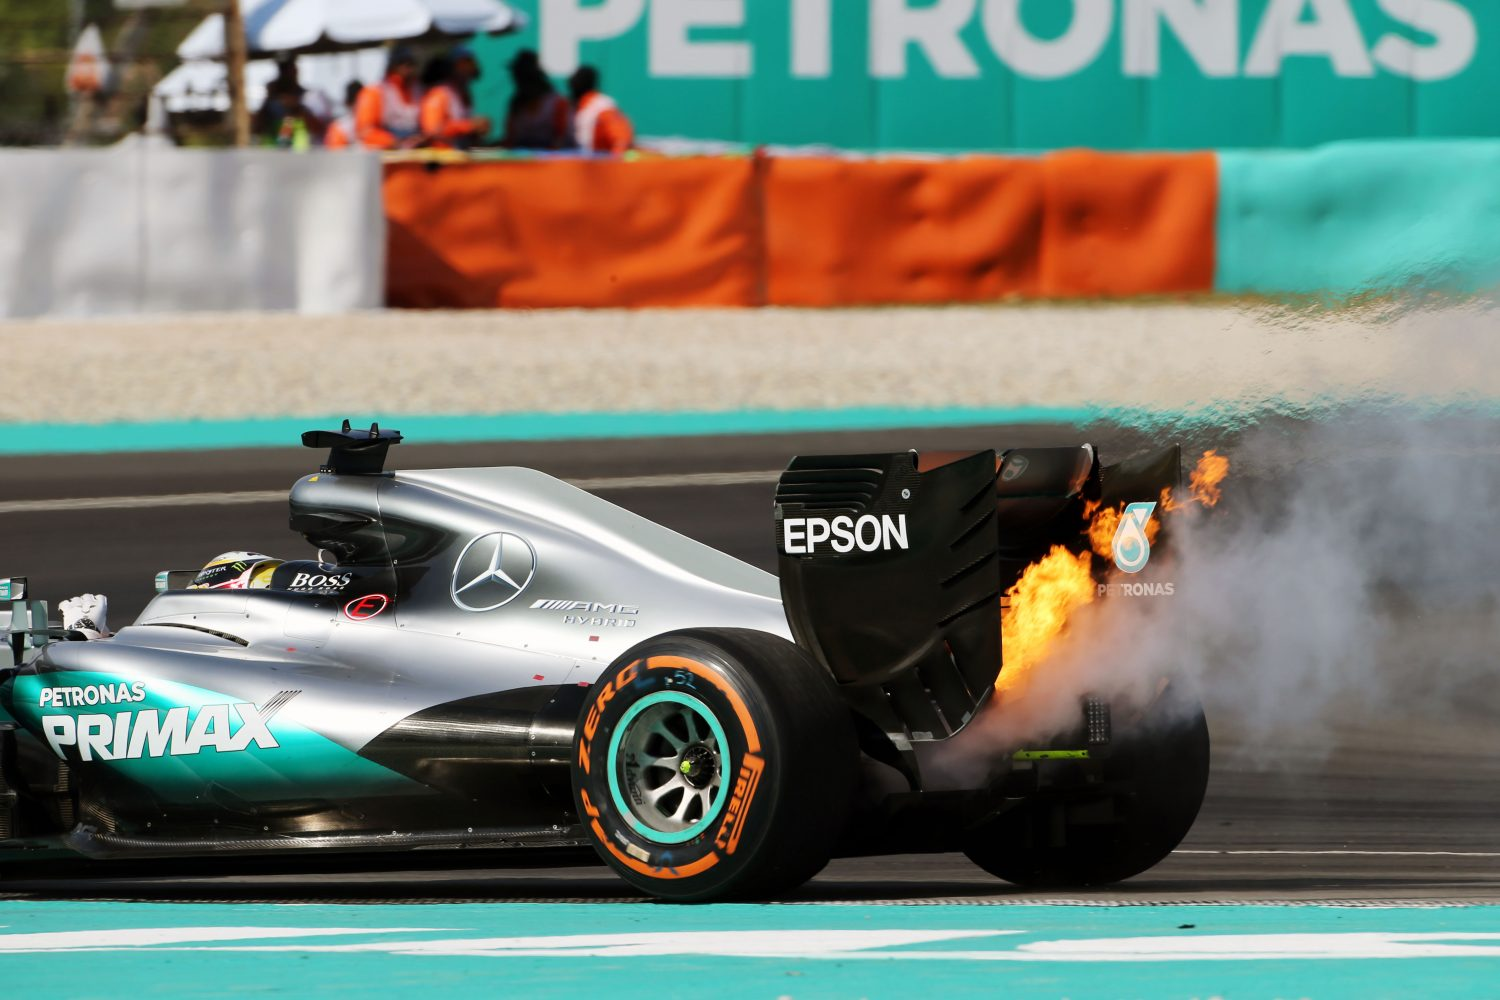 Formula One World Championship 2016, Round 16, Malaysian Grand Prix, Kuala Lumpur, Malaysia, Sunday 2 October 2016 - Lewis Hamilton (GBR) Mercedes AMG F1 W07 Hybrid retired from the race with a blown engine.